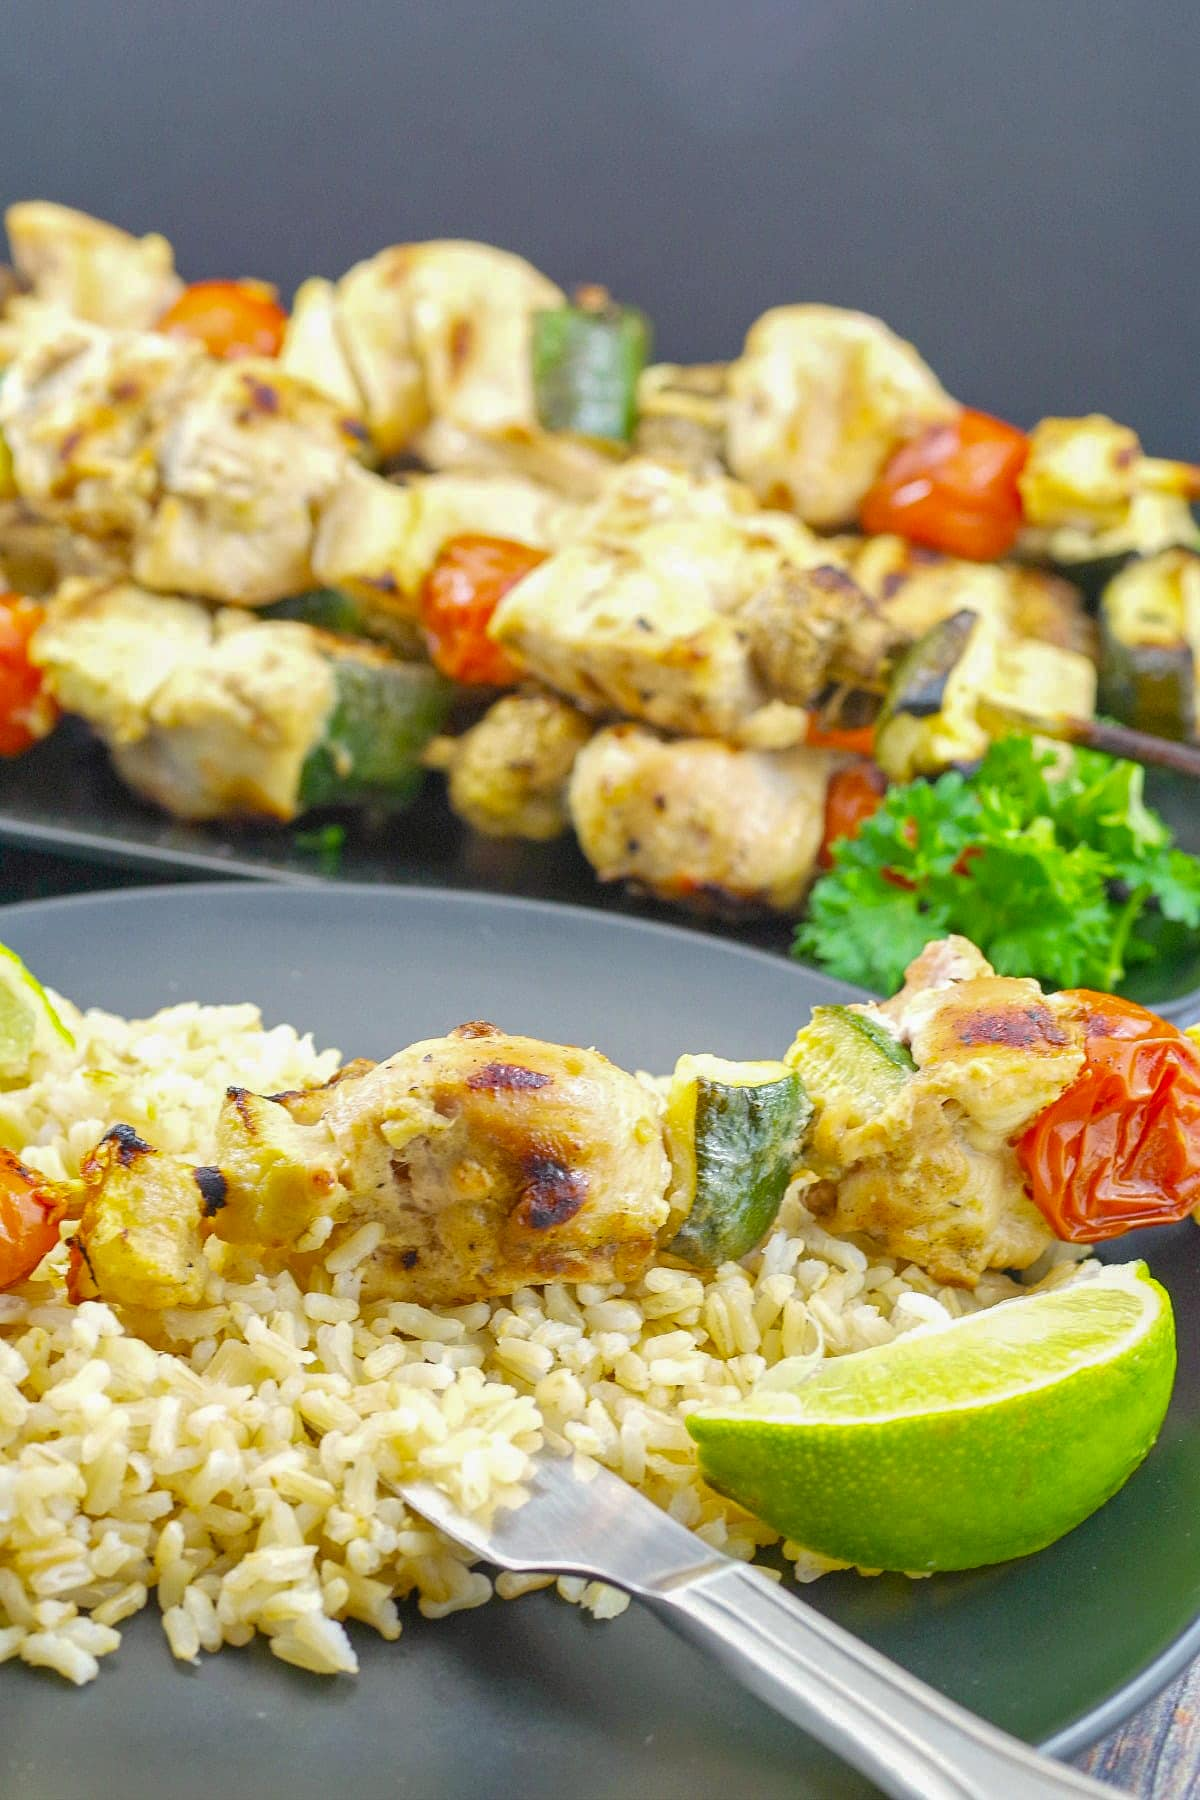 Kabob on rice pilaf with lime and tray of kabobs in background